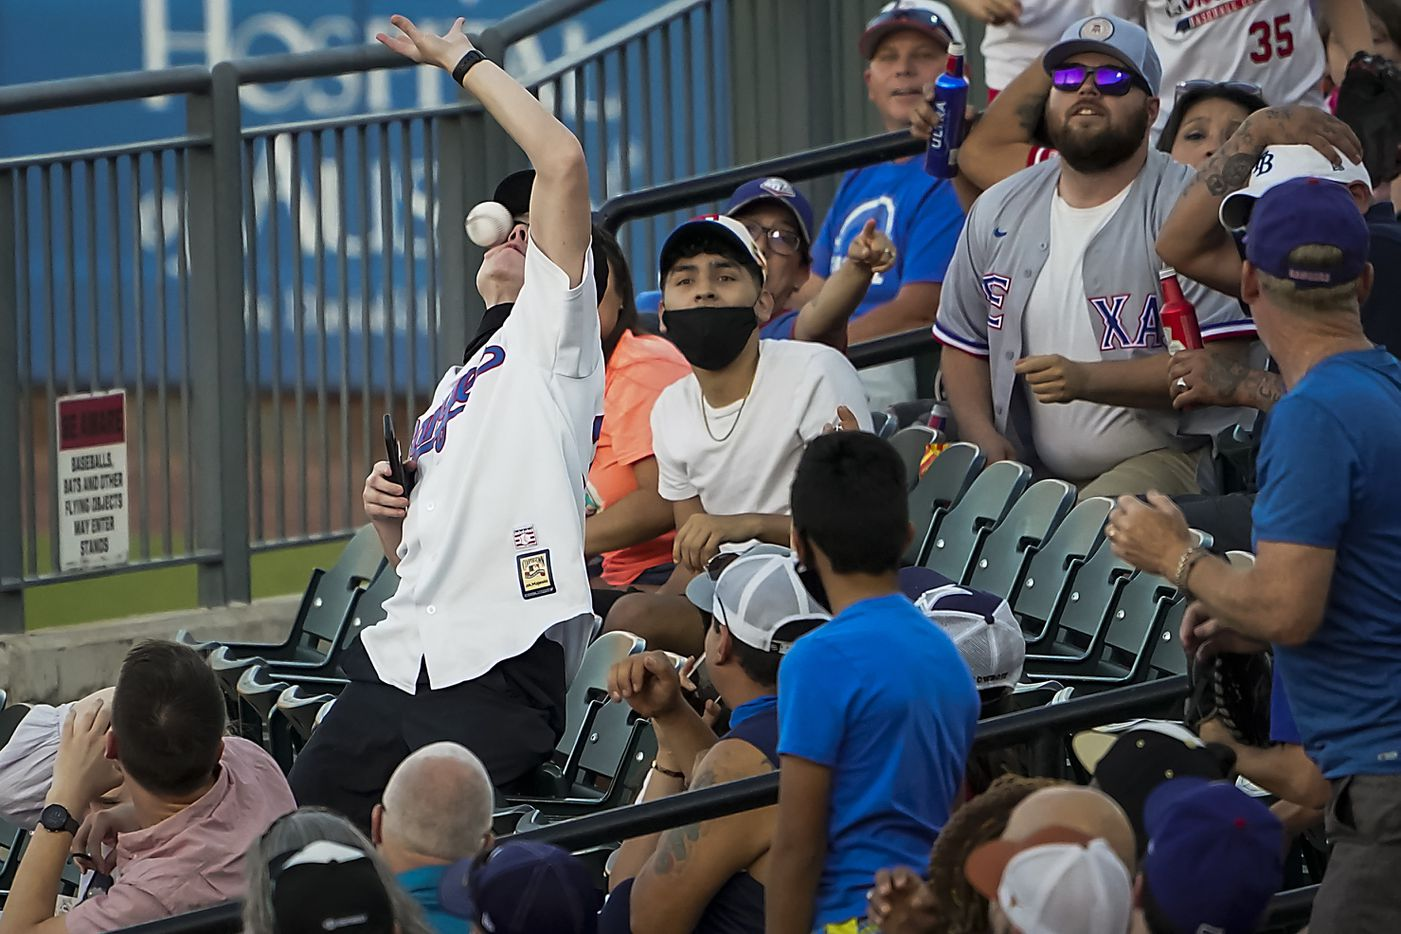 A fan is hit in the face as he tries to catch a foul ball of the bat of Round Rock Express infielder Charles Leblanc during the second inning against the Oklahoma City Dodgers at Dell Diamond on Thursday, May 6, 2021, in Round Rock, Texas. The injured fan left the stadium with medical personnel.  Leblanc later homered in the at bat.